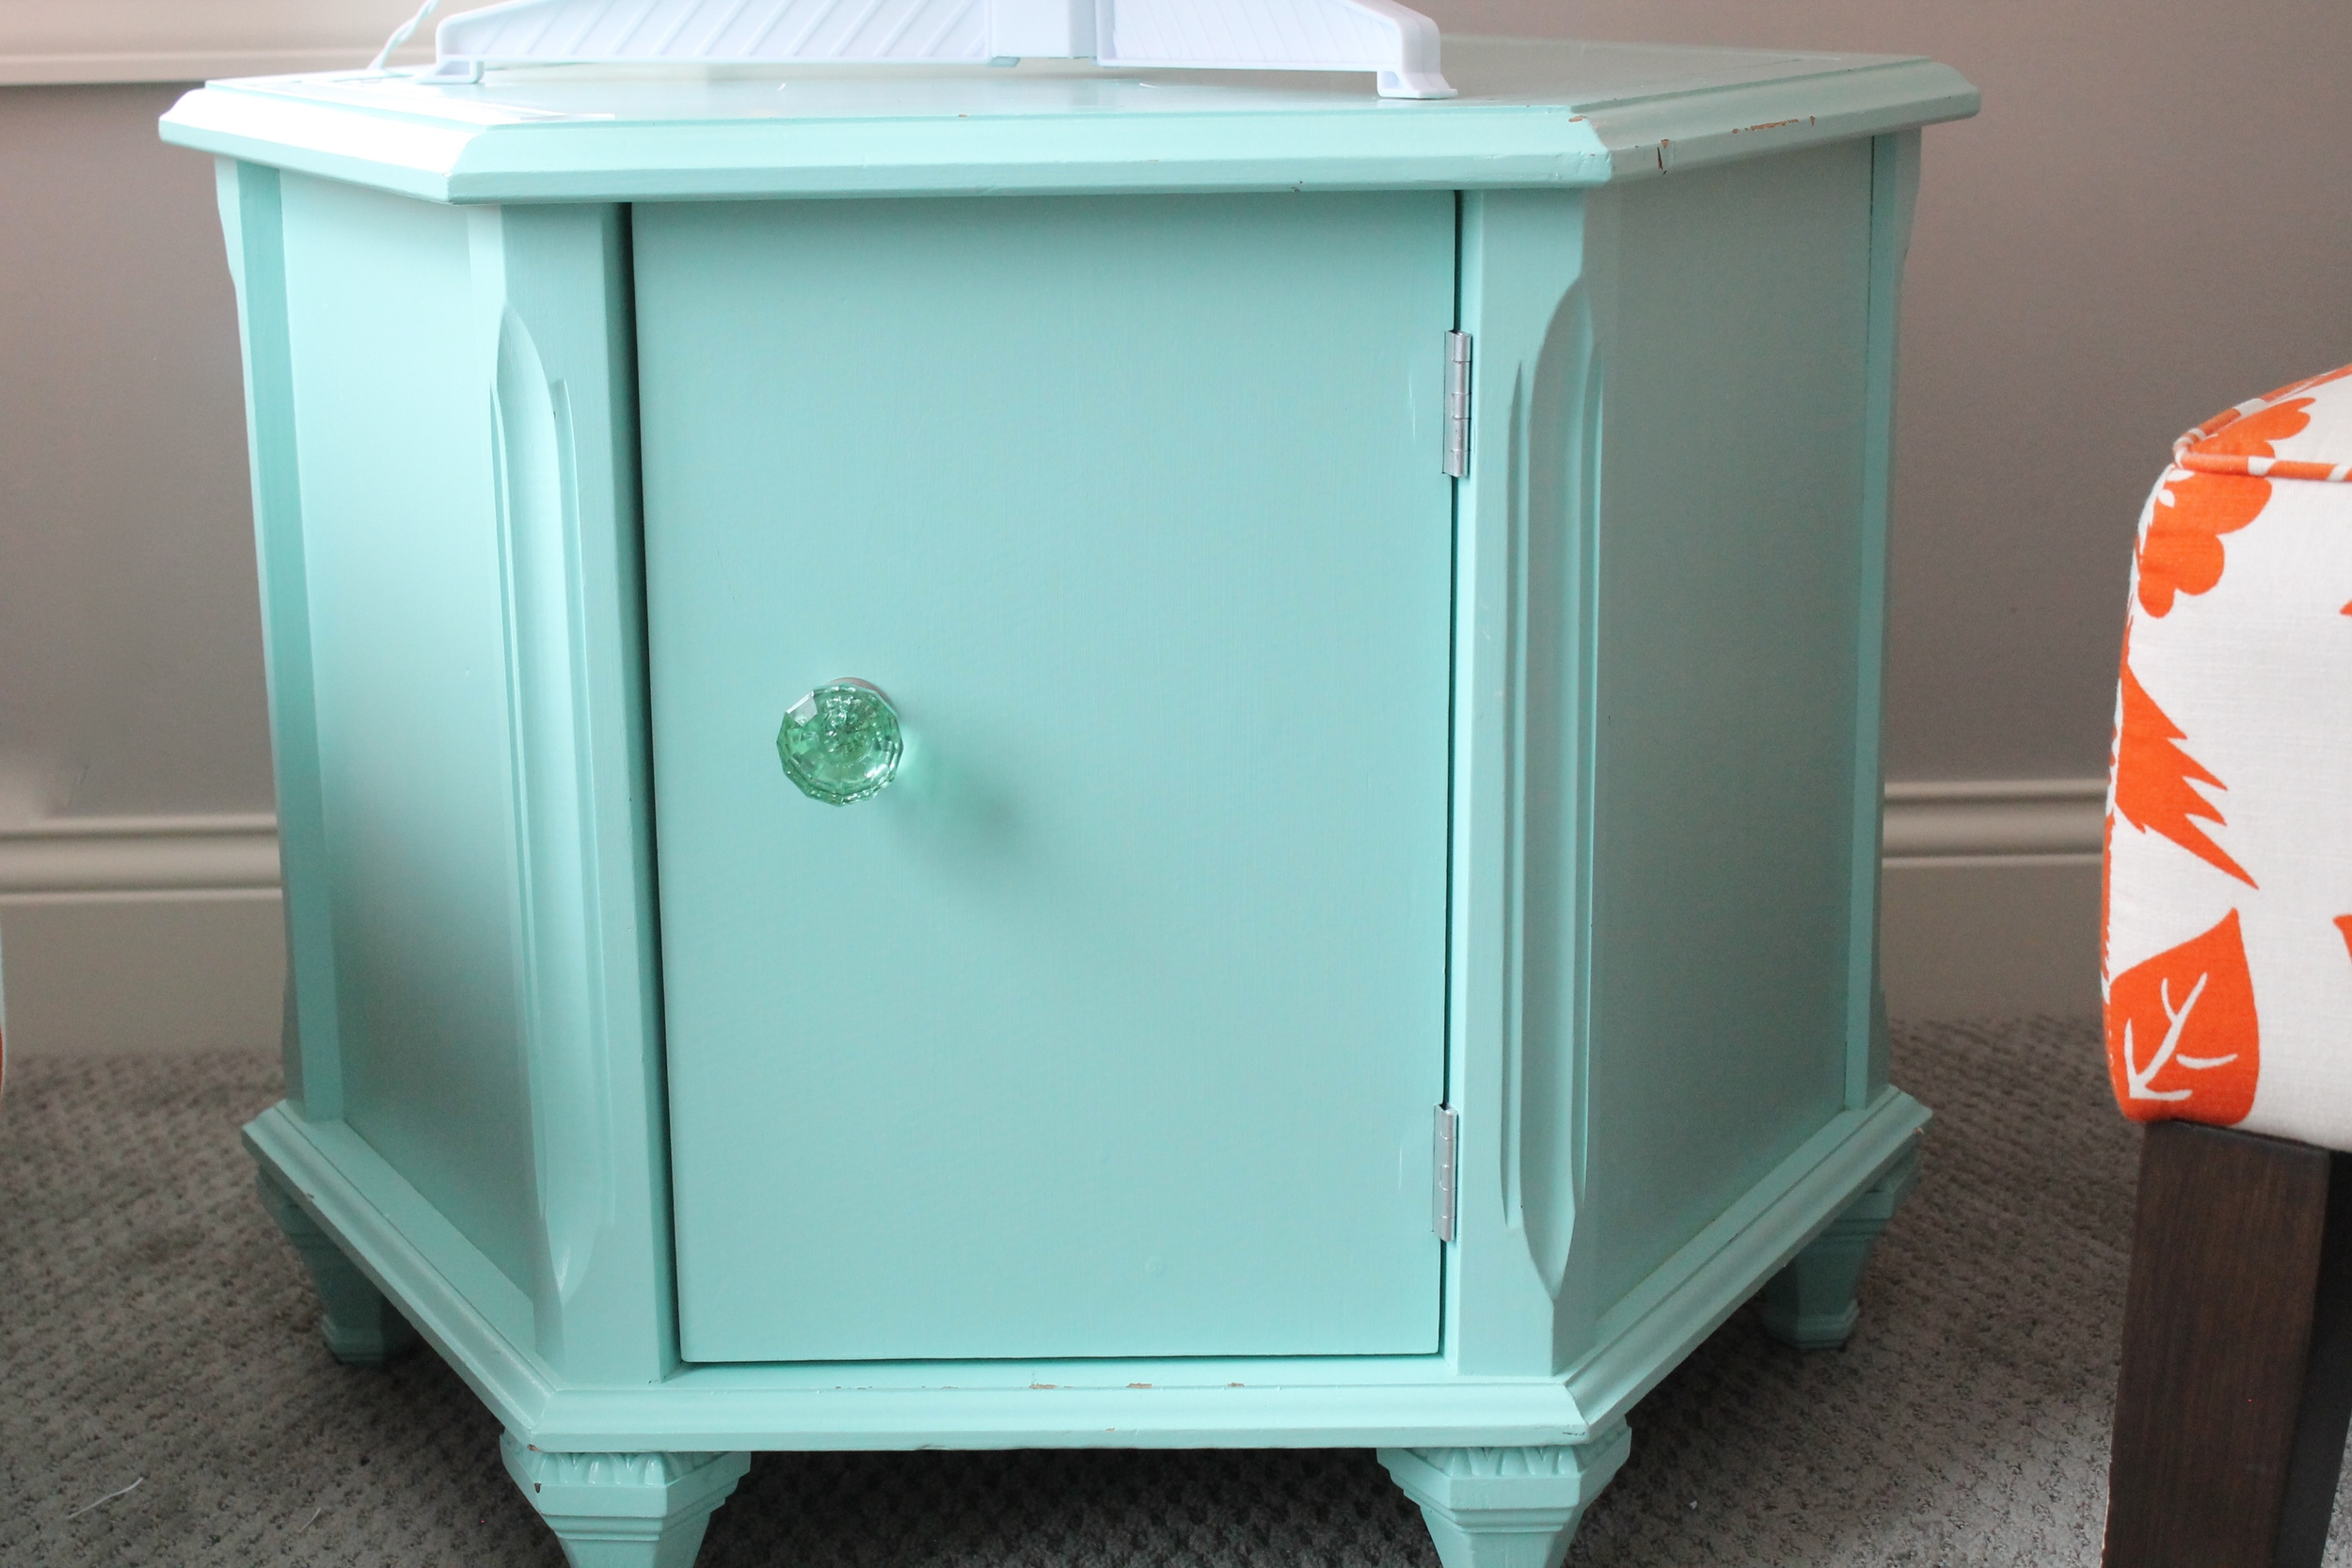 Painted Aqua Side Table Used as a Christmas Tree Stand